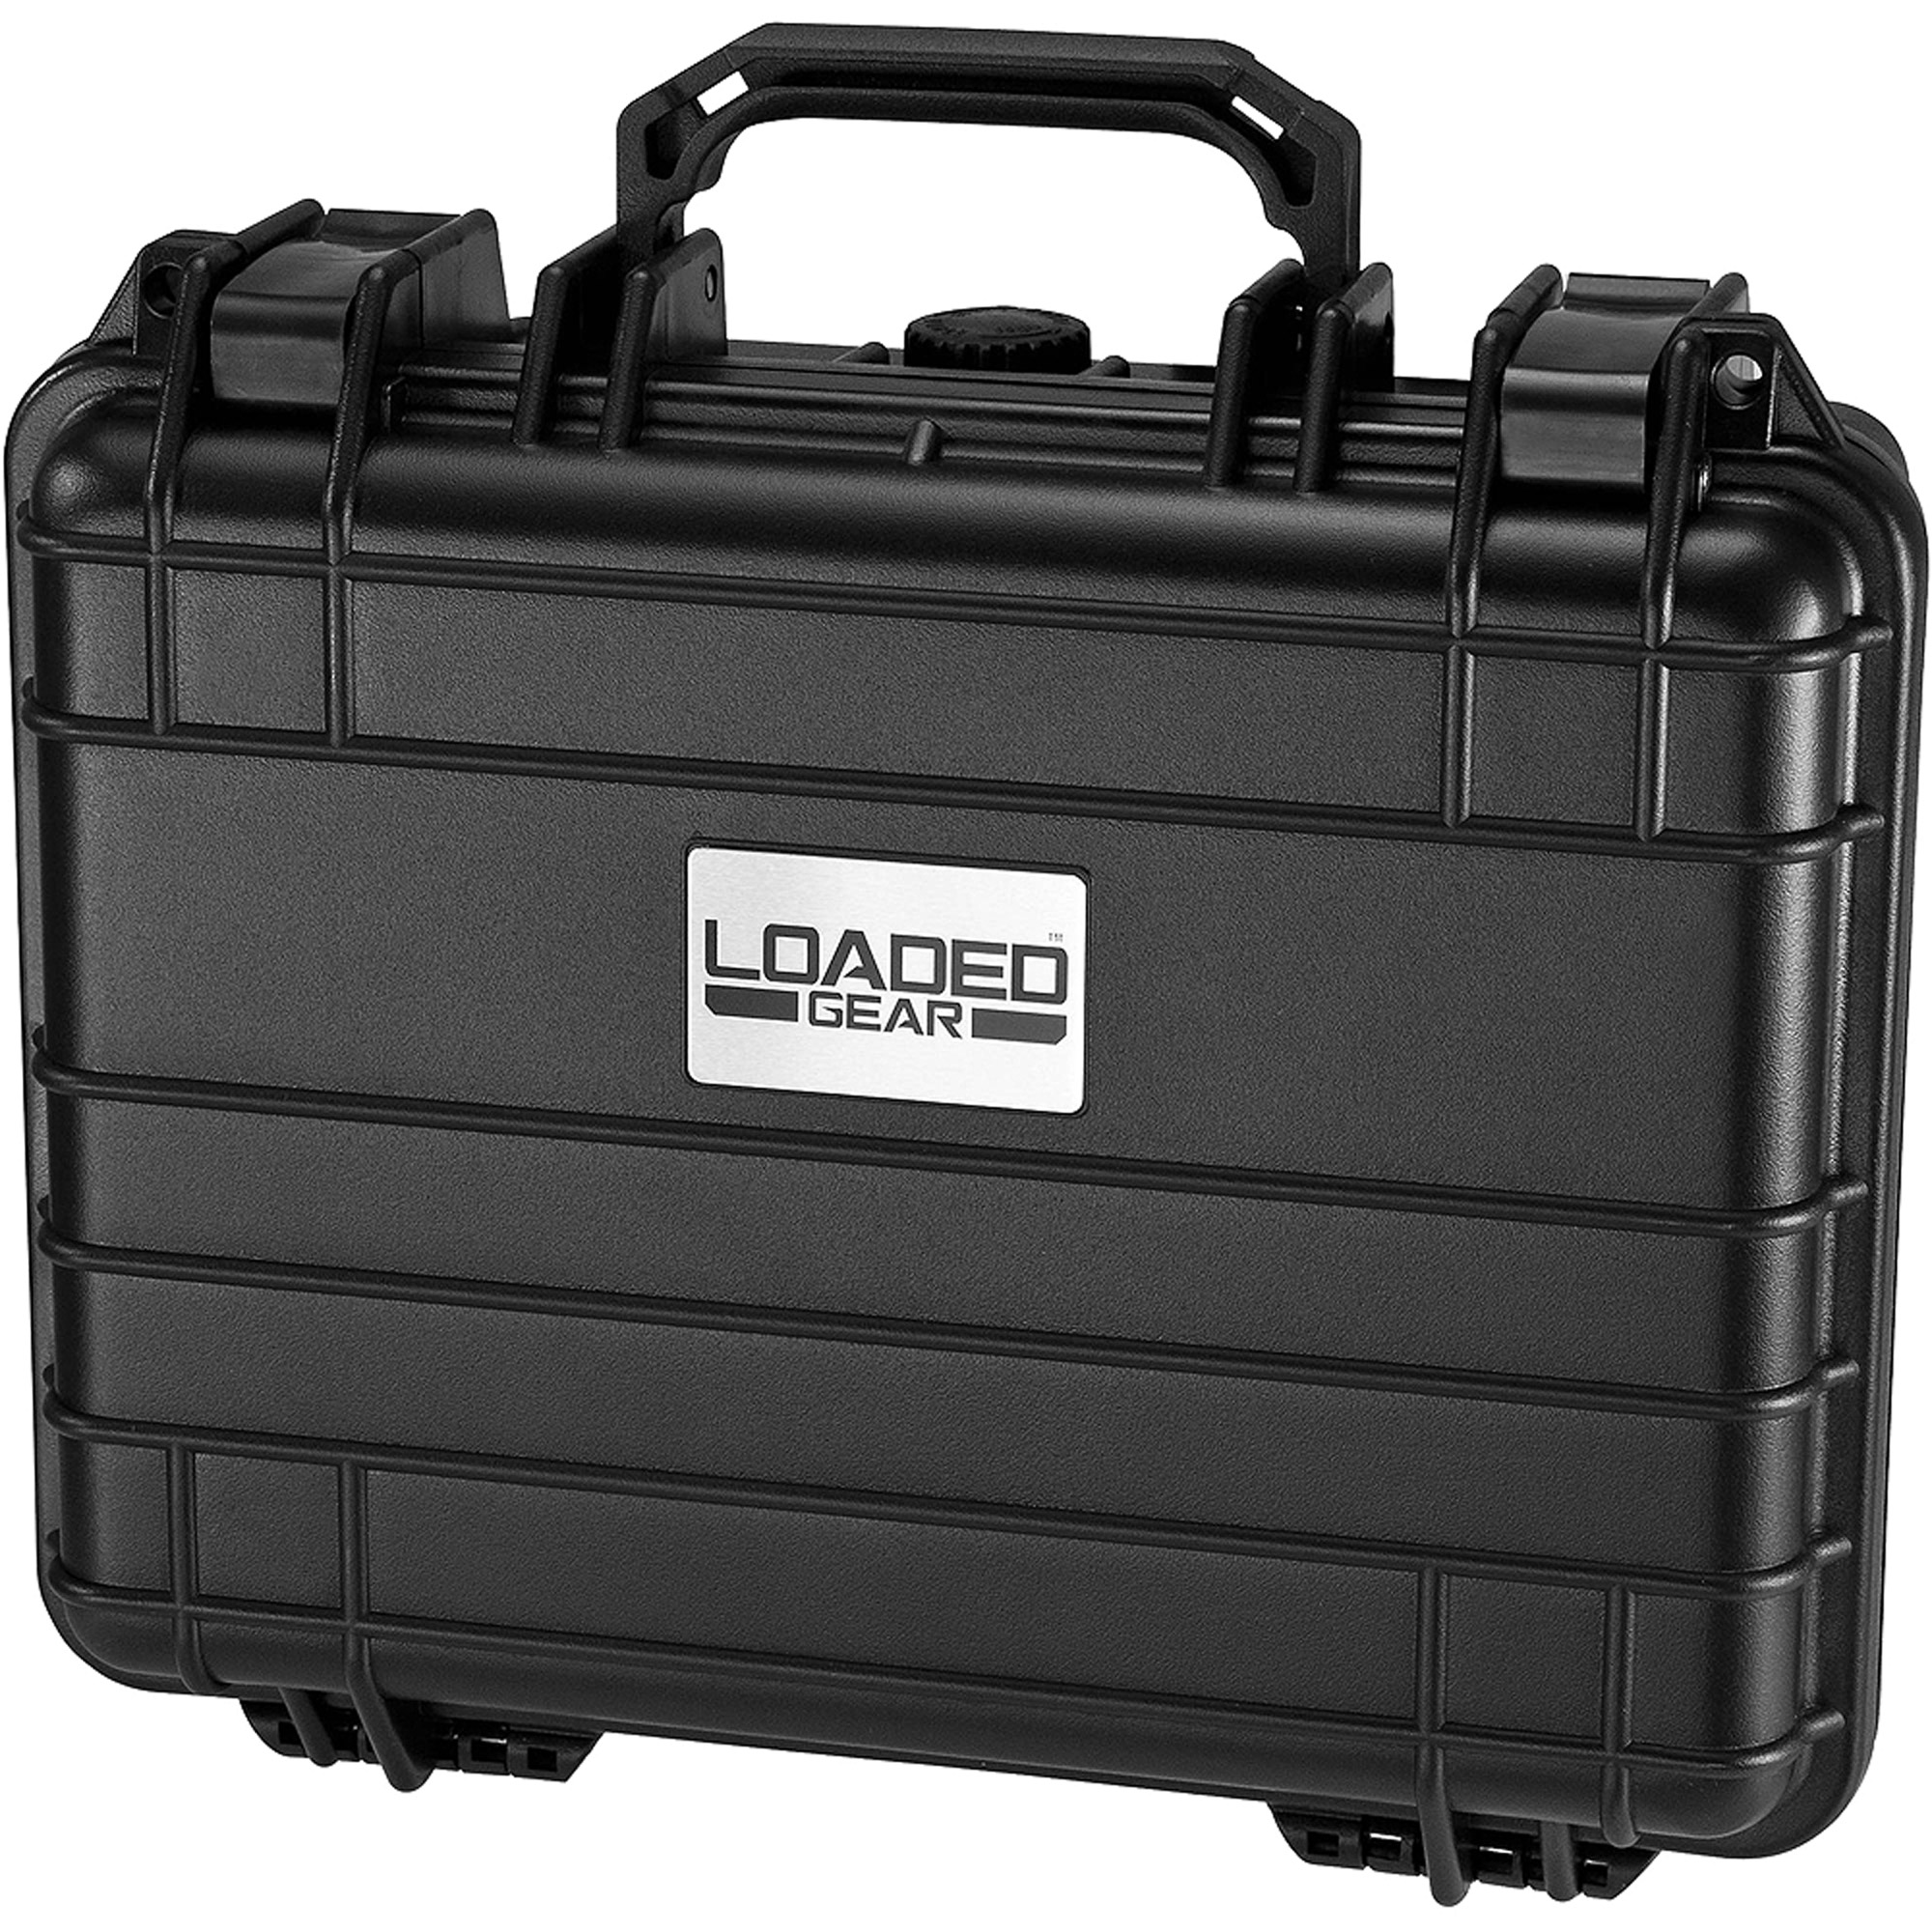 Barska Optics Loaded Gear Hard Case, HD-200, Black